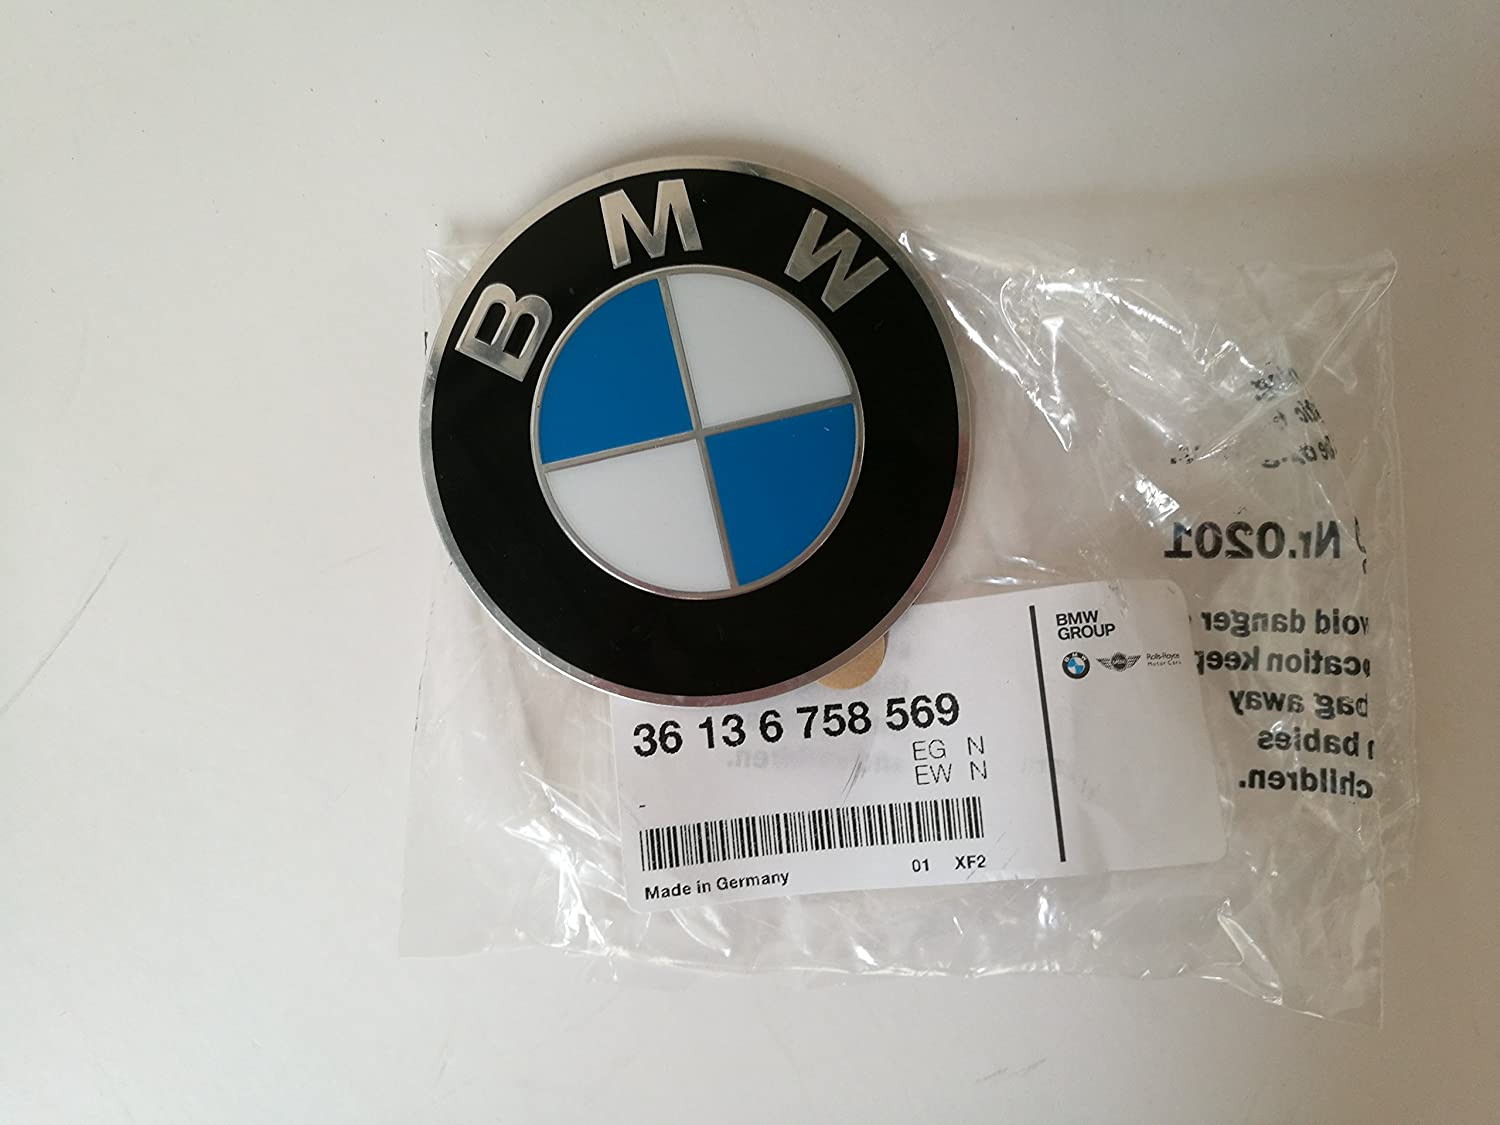 BMW 36-13-6-758-569 Insignia Stamped with Ad